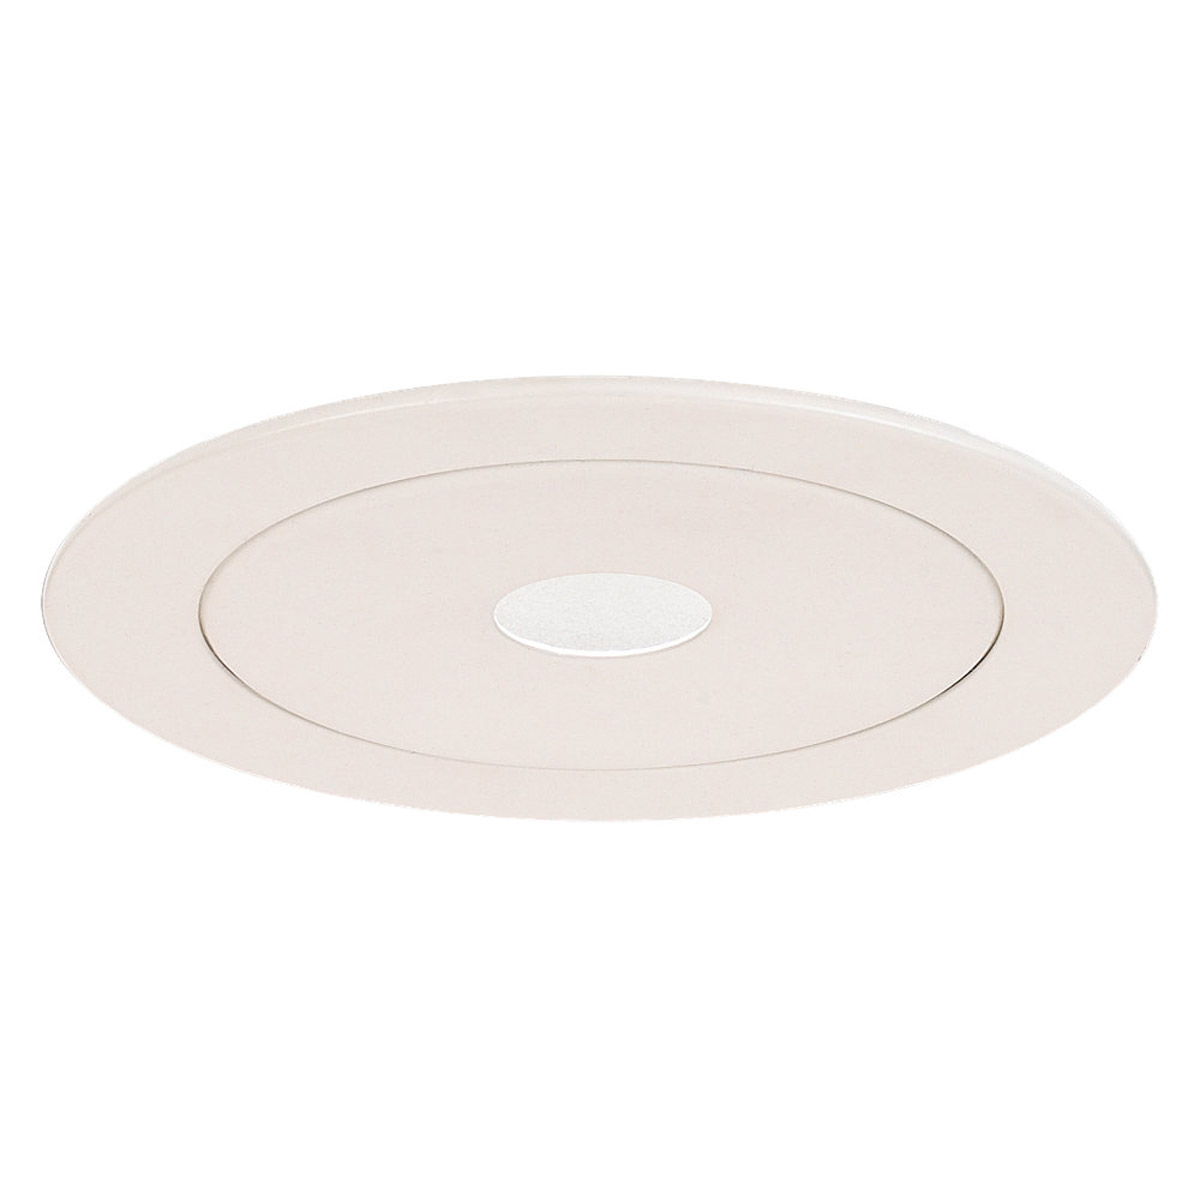 Sea Gull Lighting Signature Recessed Trim Only in White 1238AT-15 photo